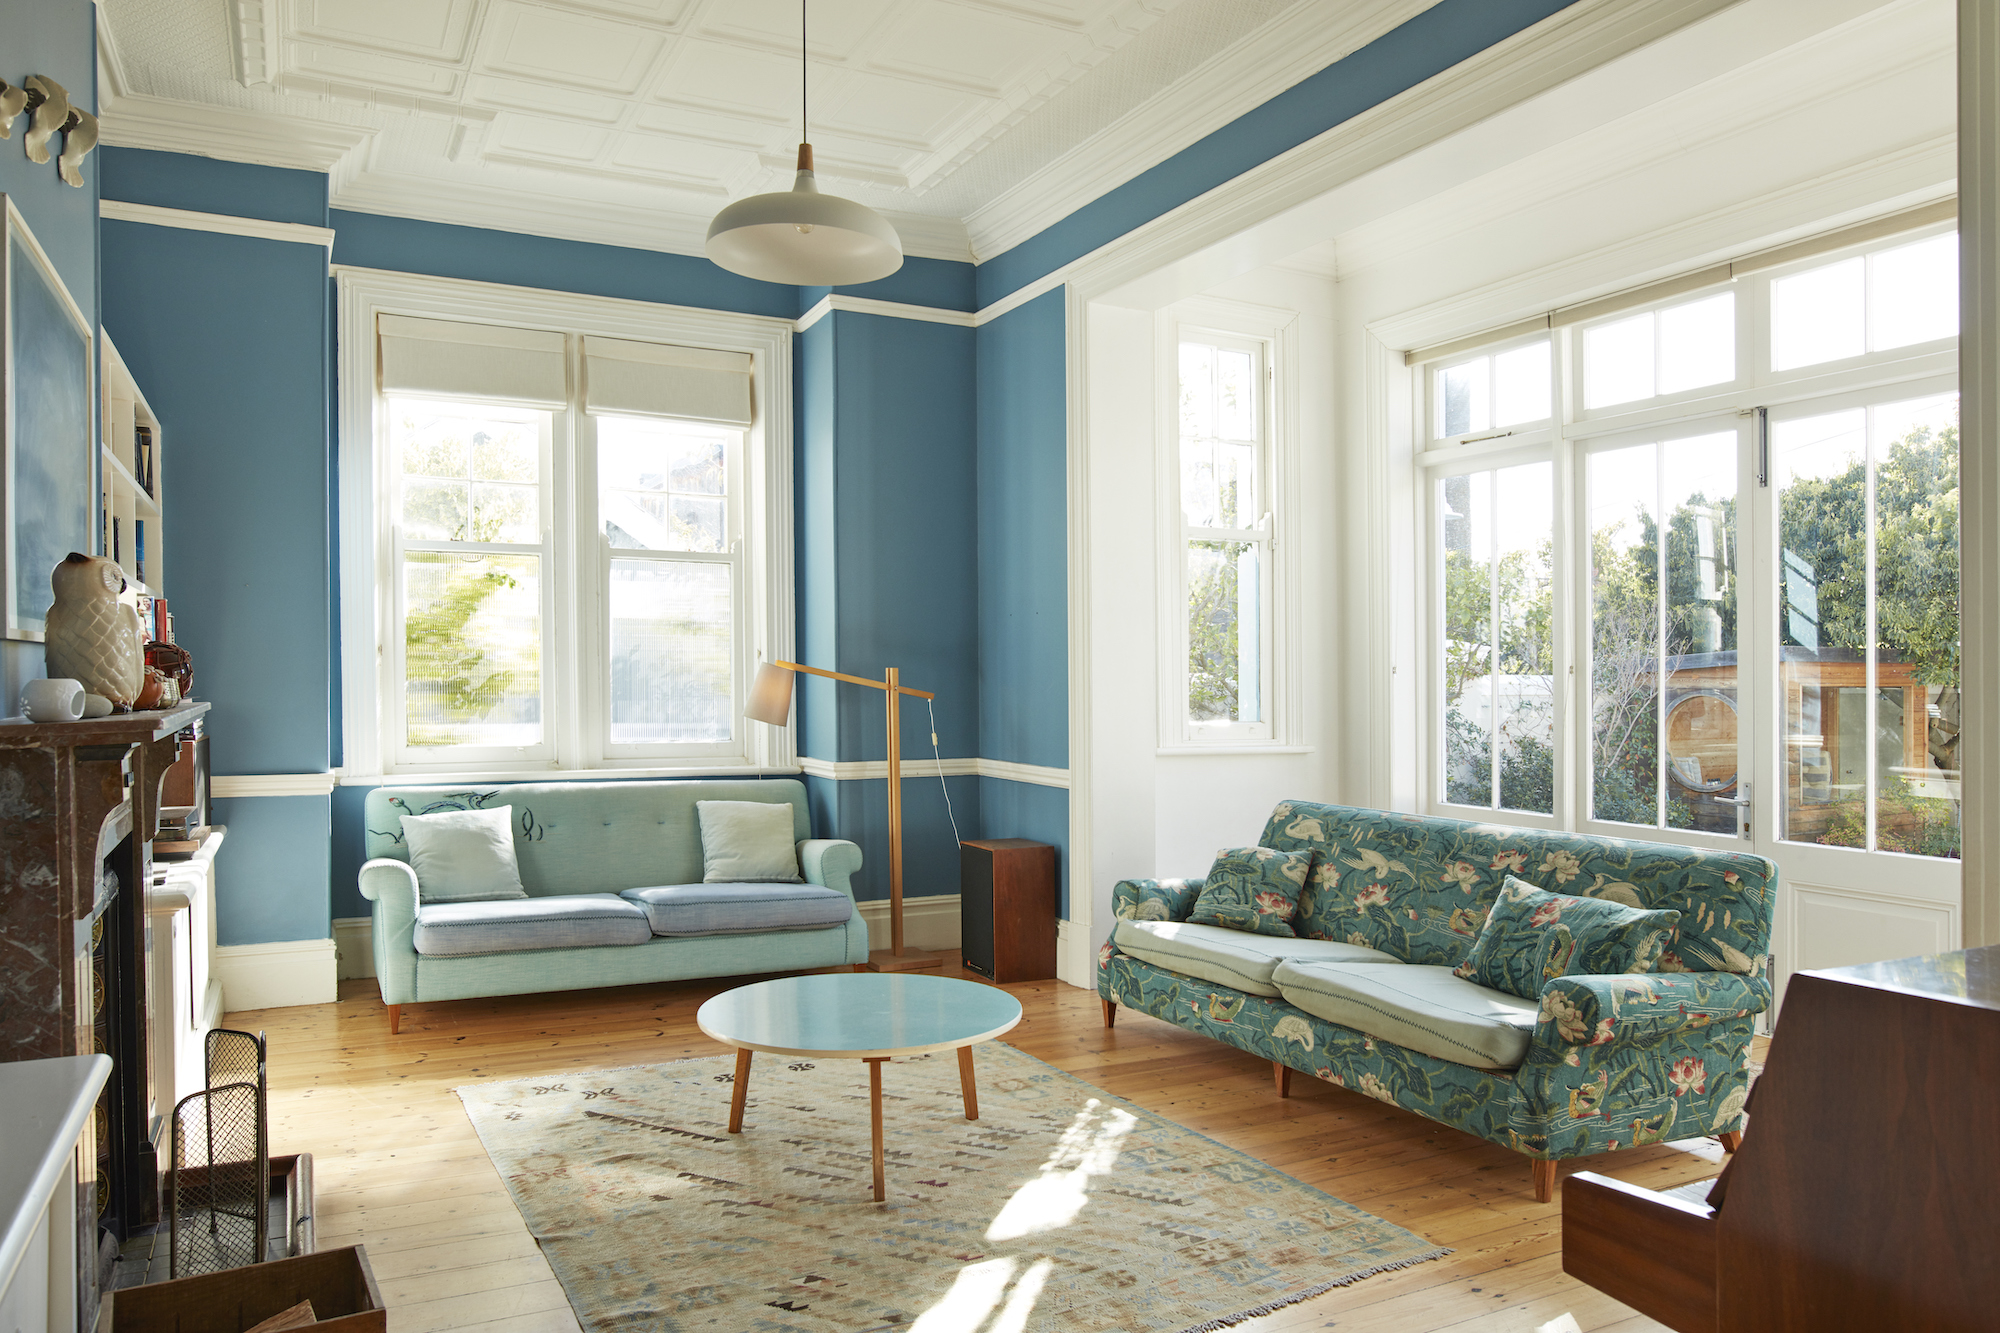 Blue Walls and White Trim in Living Room